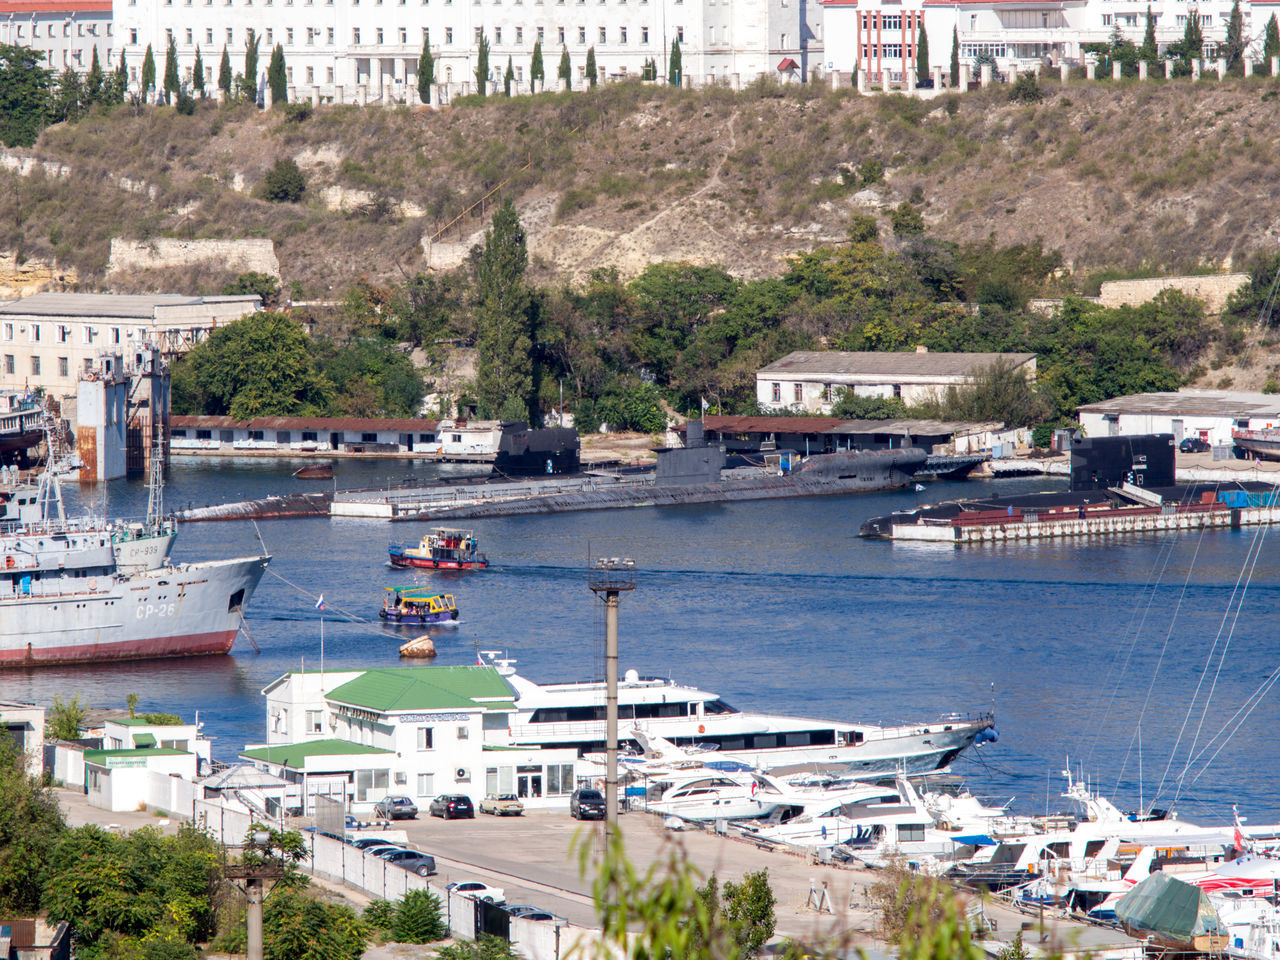 Bay City Commercial Dock Crimea Day Gawlet Harbor Mode Of Transport Moored Moored Boats No People Outdoors Russia Sailboat Sevastopol  Ship Water